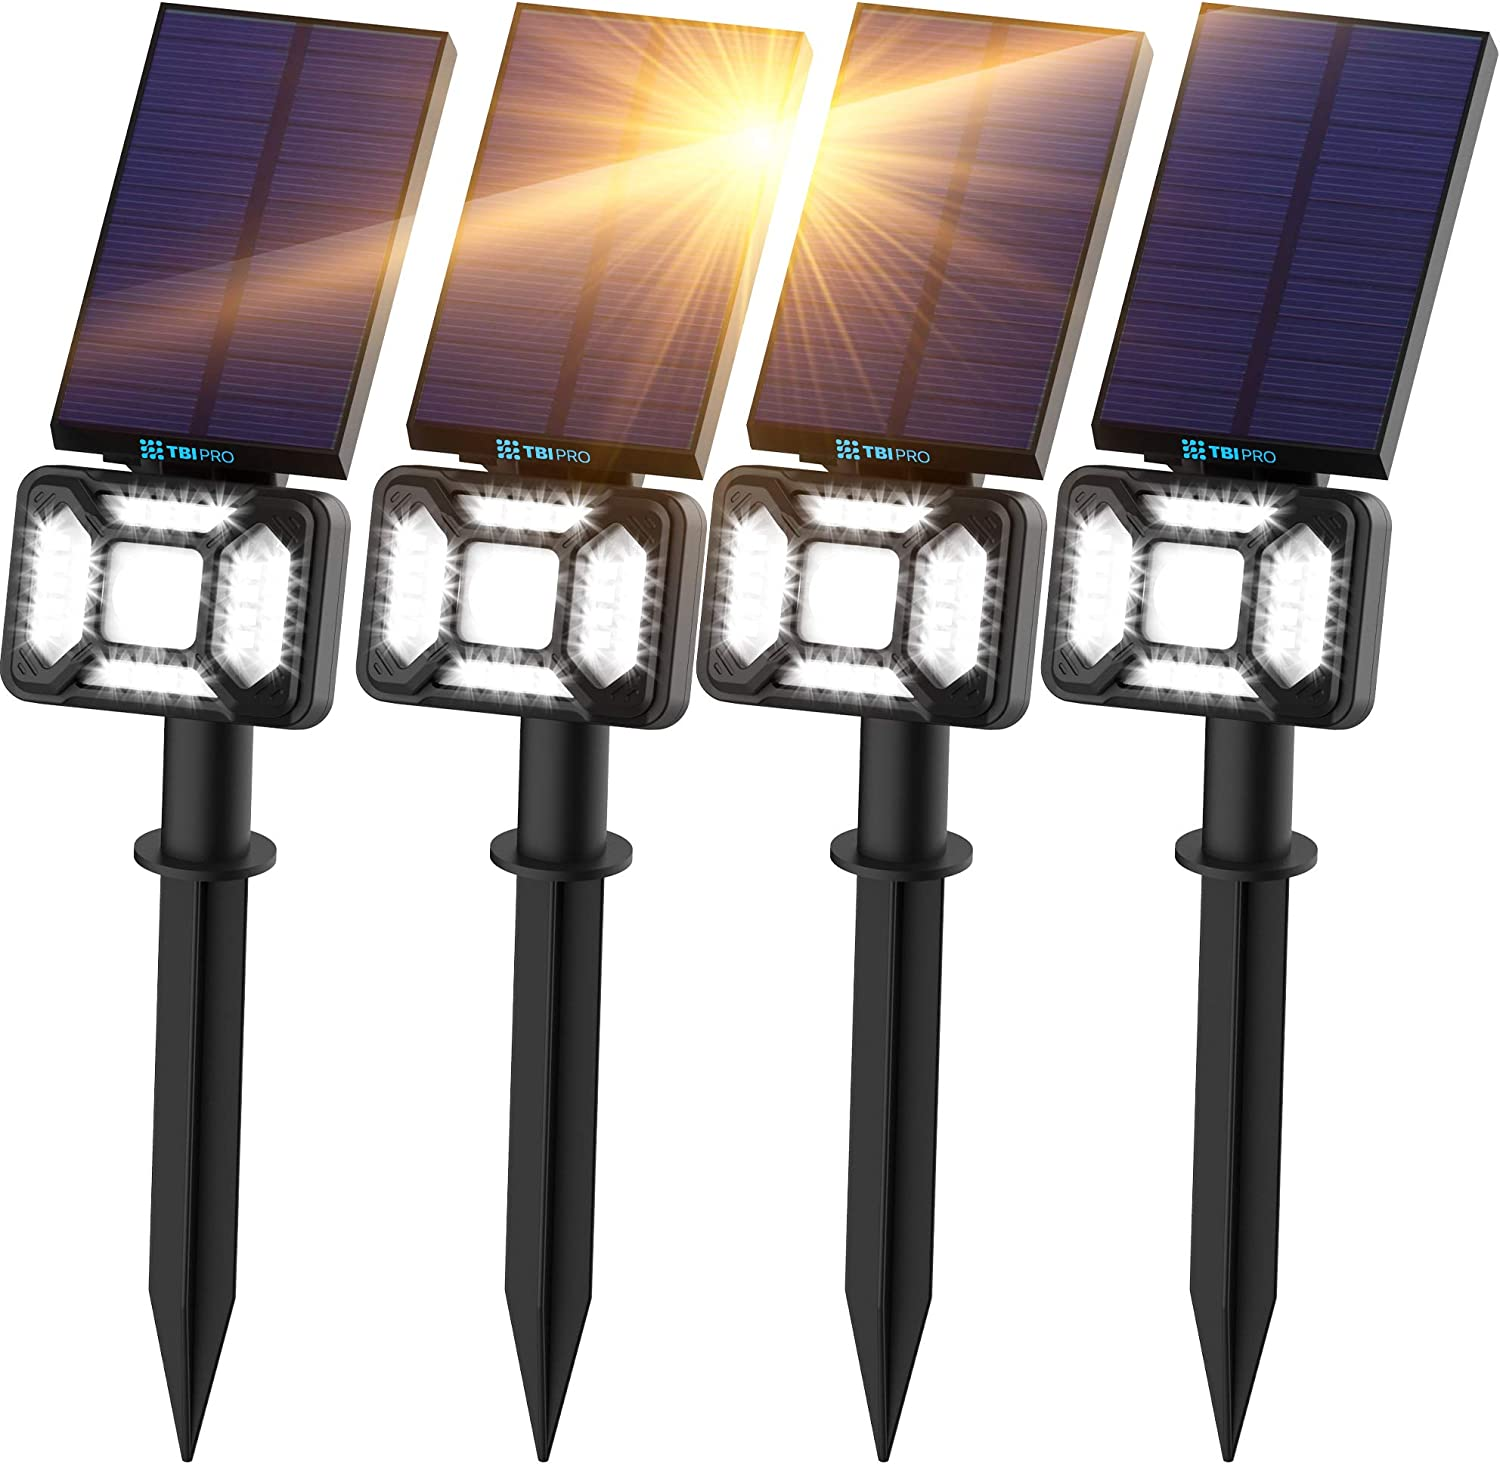 TBI Pro 27 LEDs Outdoor Solar Landscape Spotlights PRO IP65 Waterproof Wireless Solar Powered Landscaping Wall Light for Yard Garden Driveway Porch Pool Patio Cold White Adjustable 4 Pack